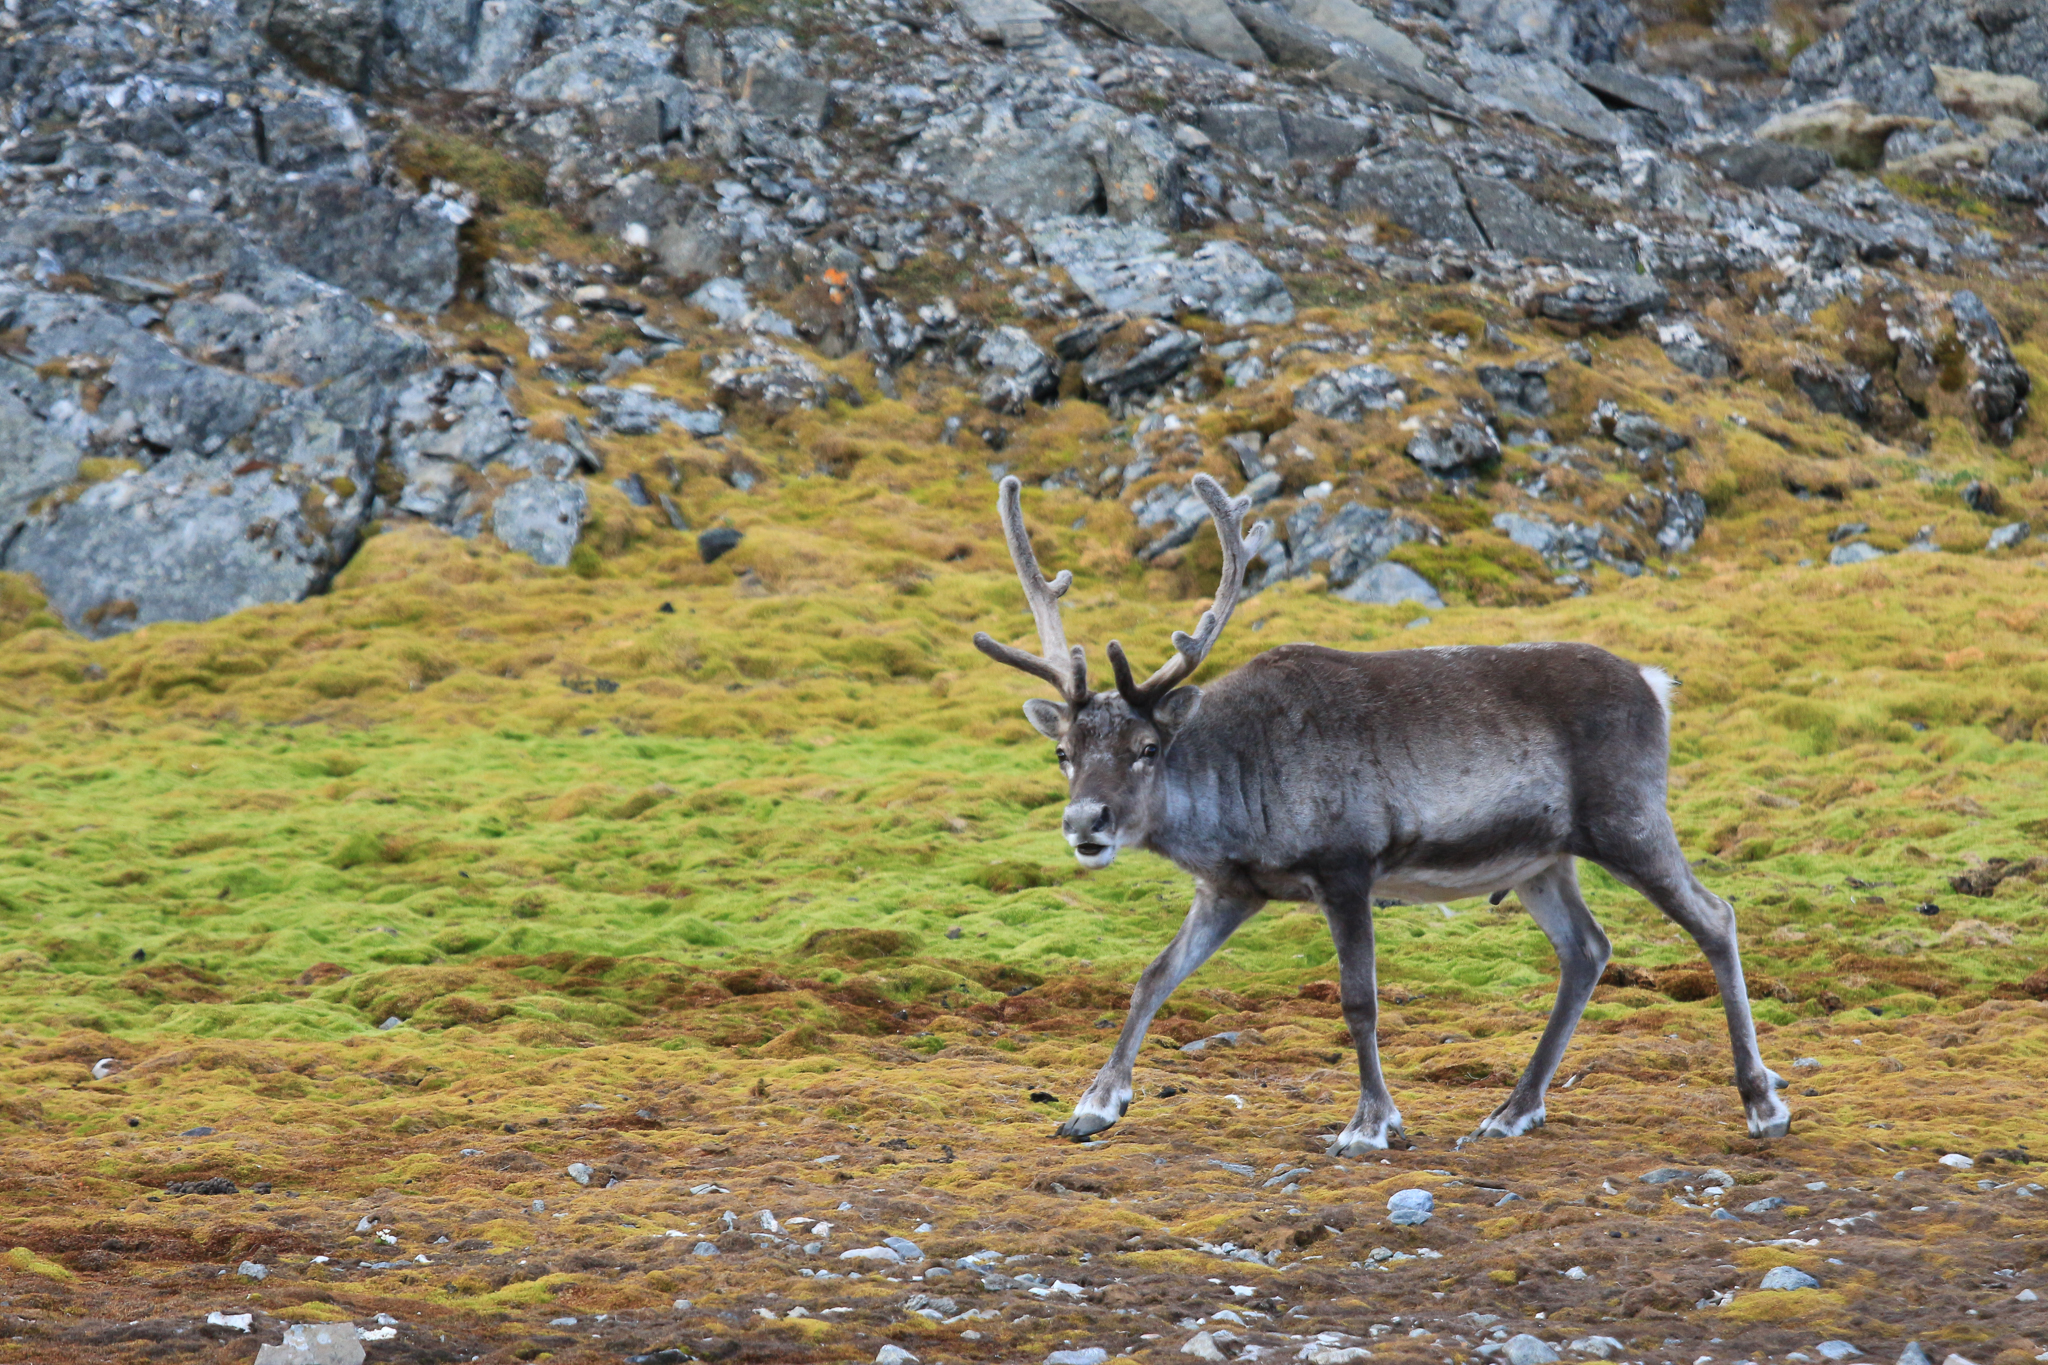 Svalbard reindeer (<em>Rangifer tarandus platyrhynchus</em>) are a smaller, endemic subspecies of reindeer. In the summer, they feed on the rich vegetation below little auk colonies to store fat for the sparse winter months. Photograph by Hannah Hoag